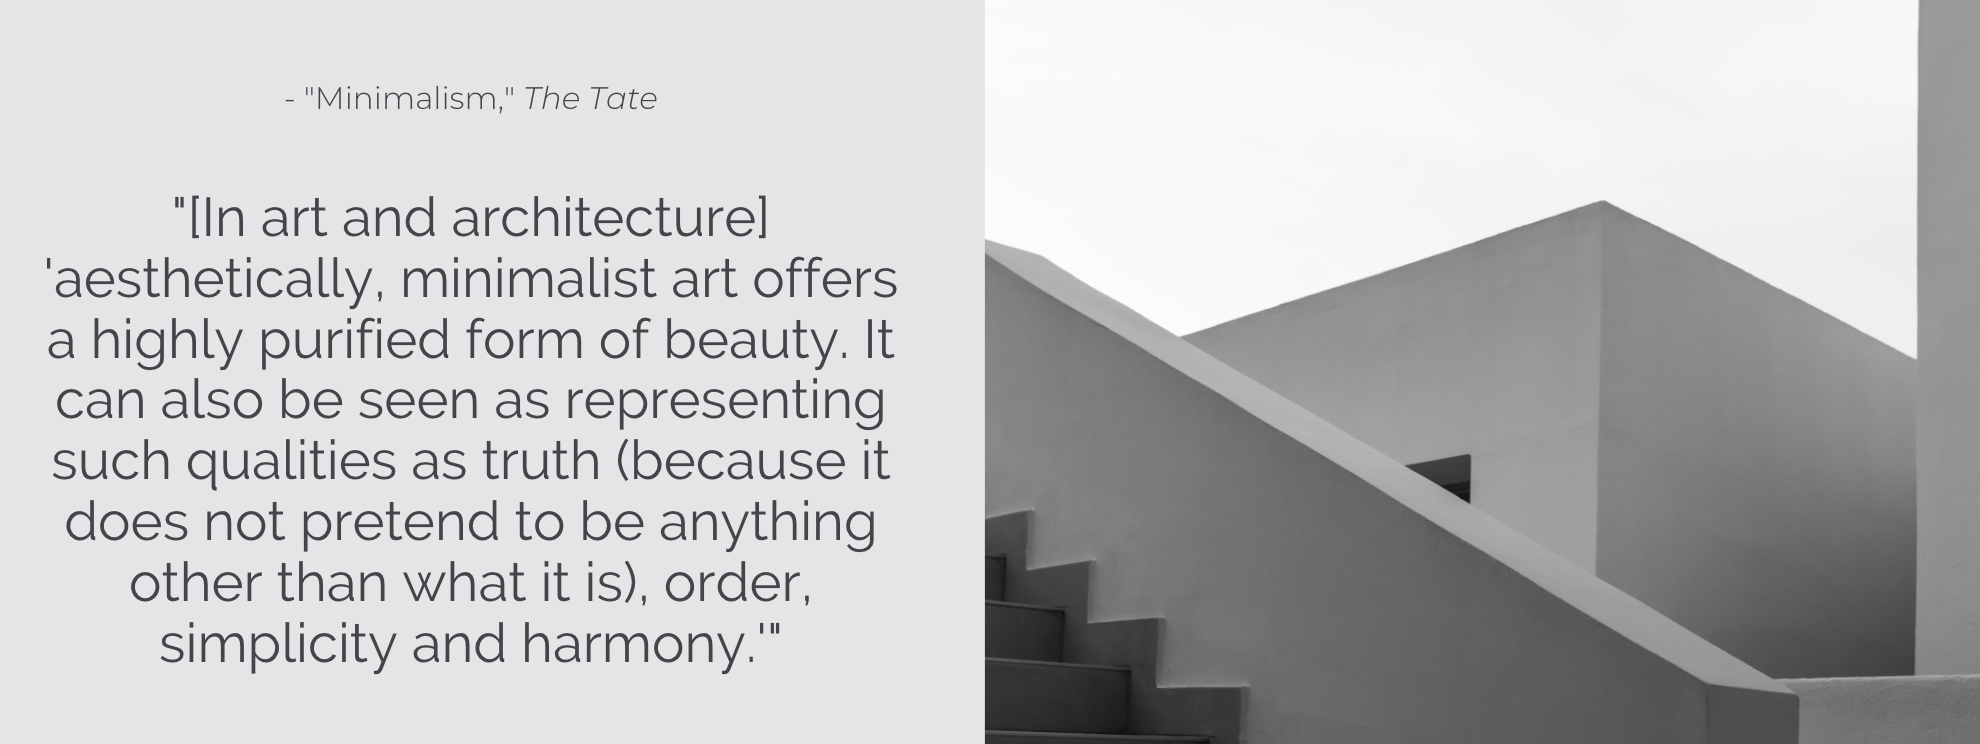 Minimalism is represented in art and architecture